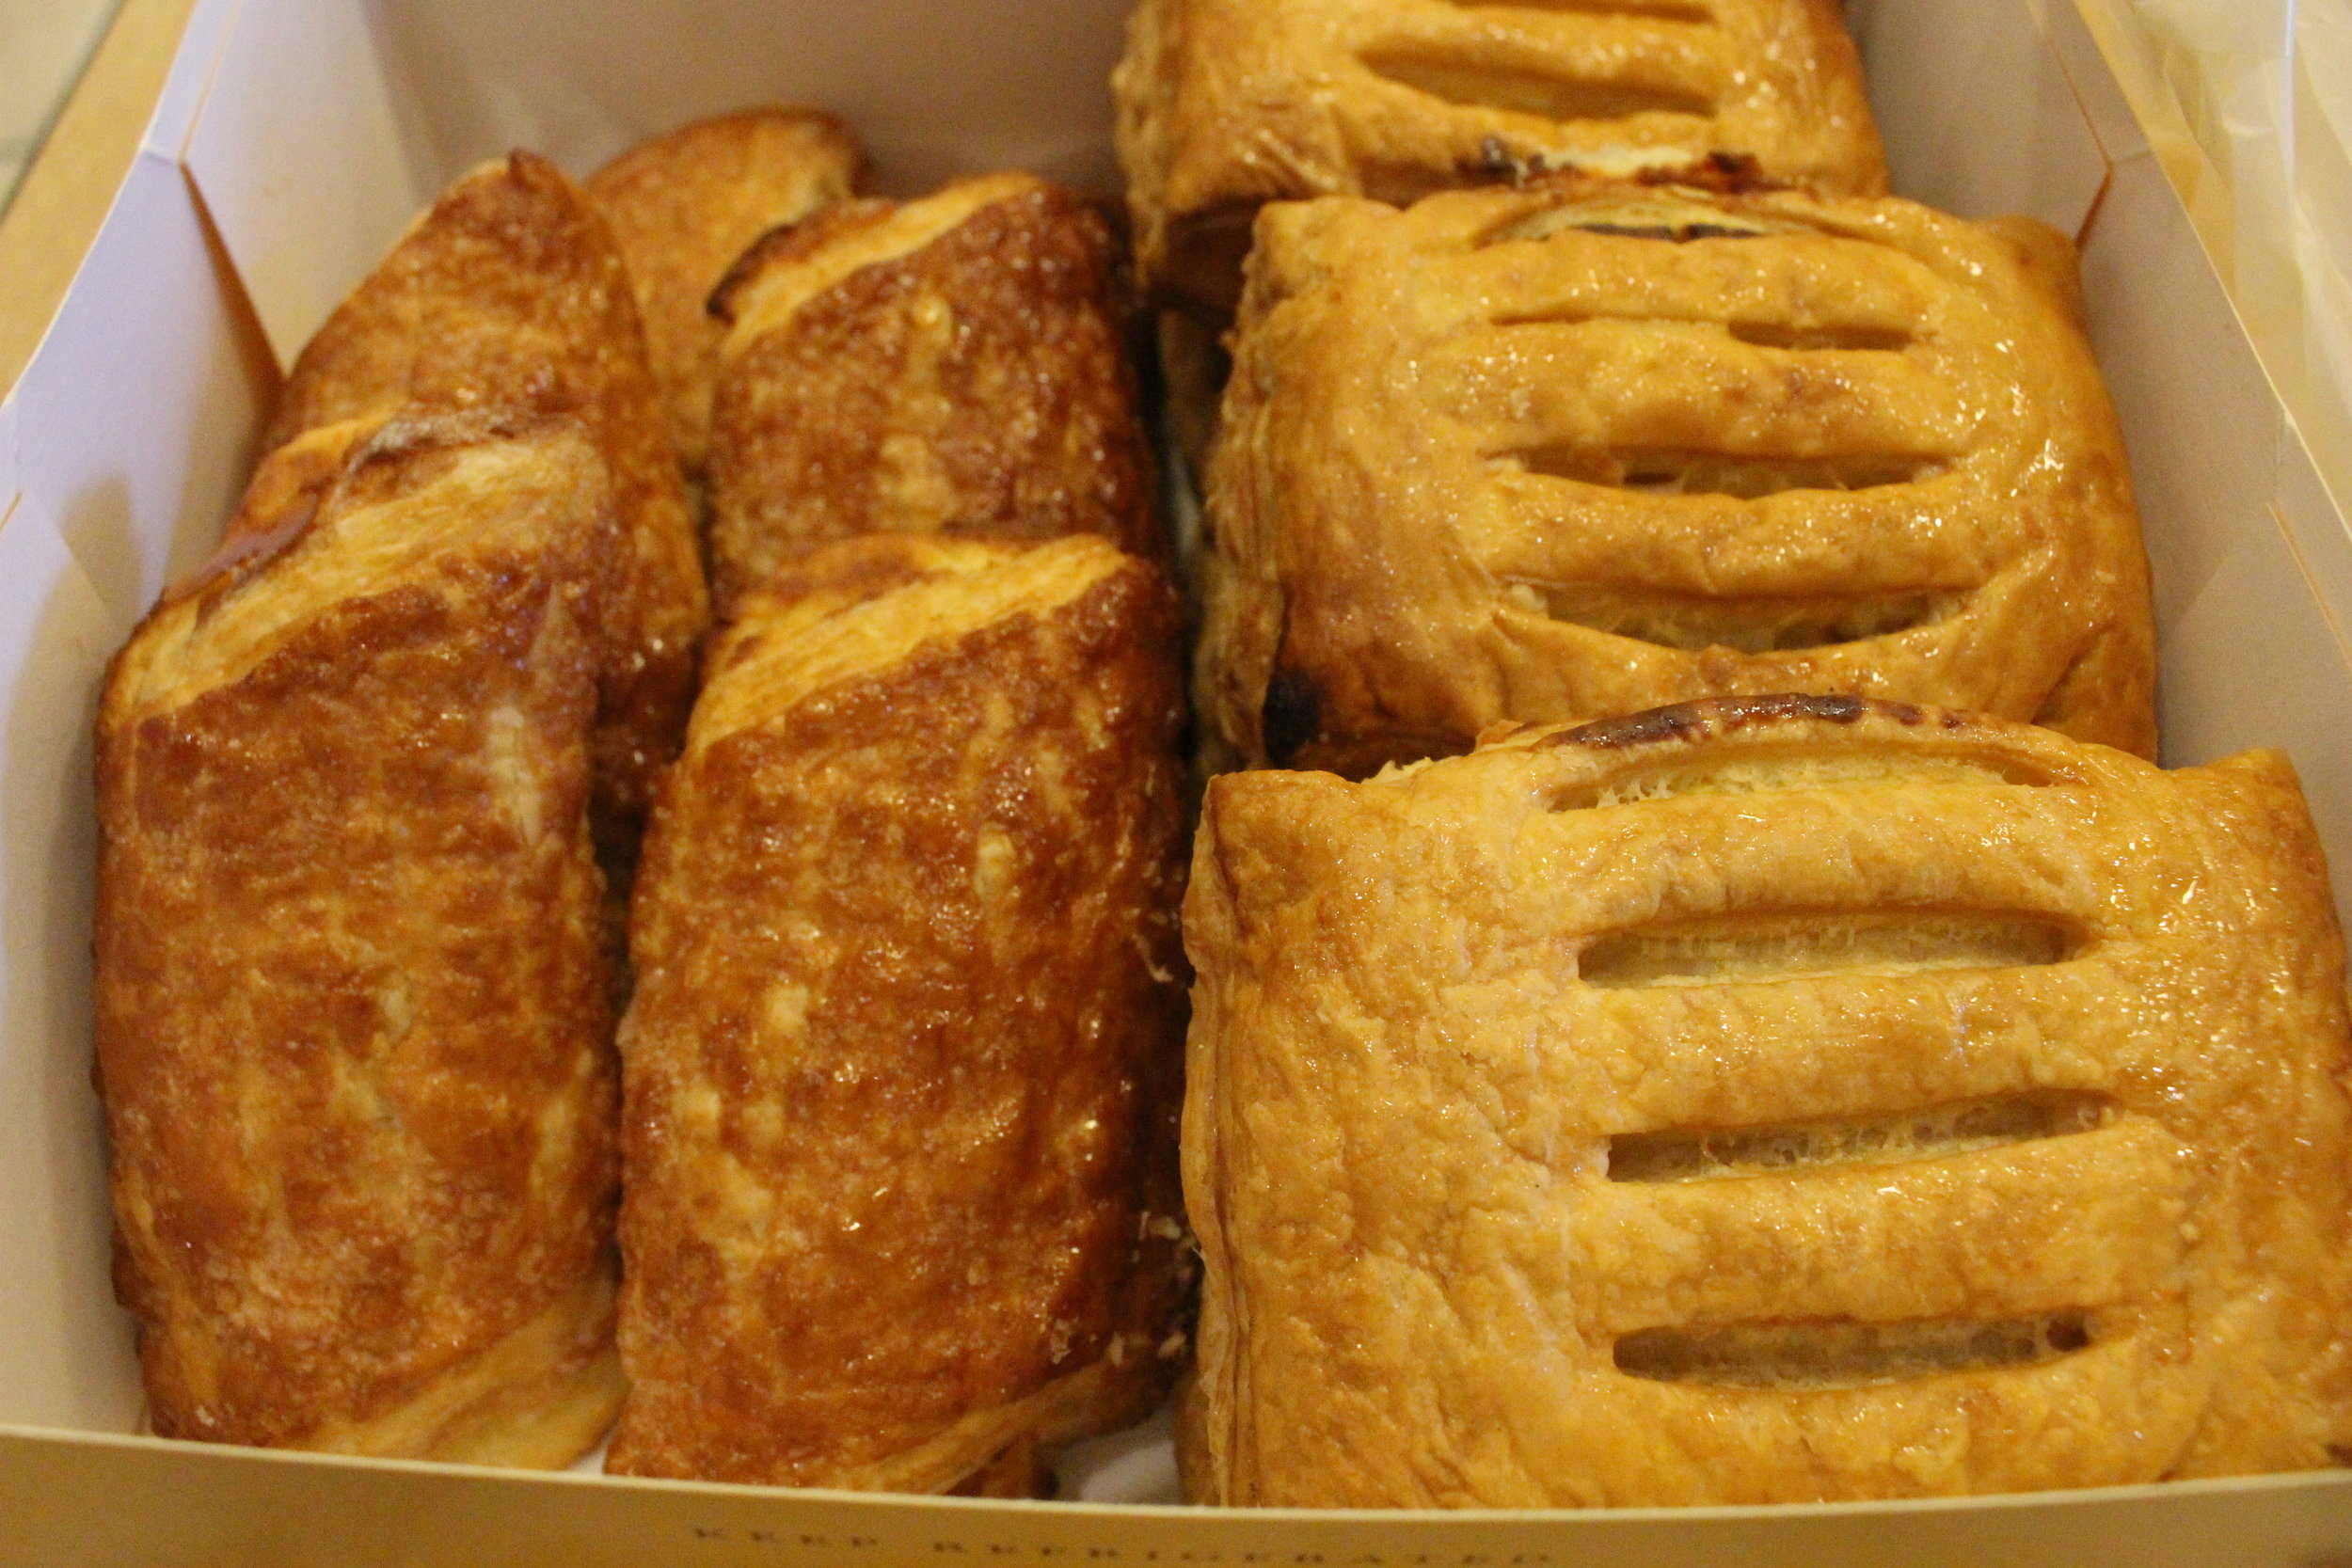 Cheese rolls and guava cheese rolls from Porto's Bakery in Glendale (Tamara Palmer)